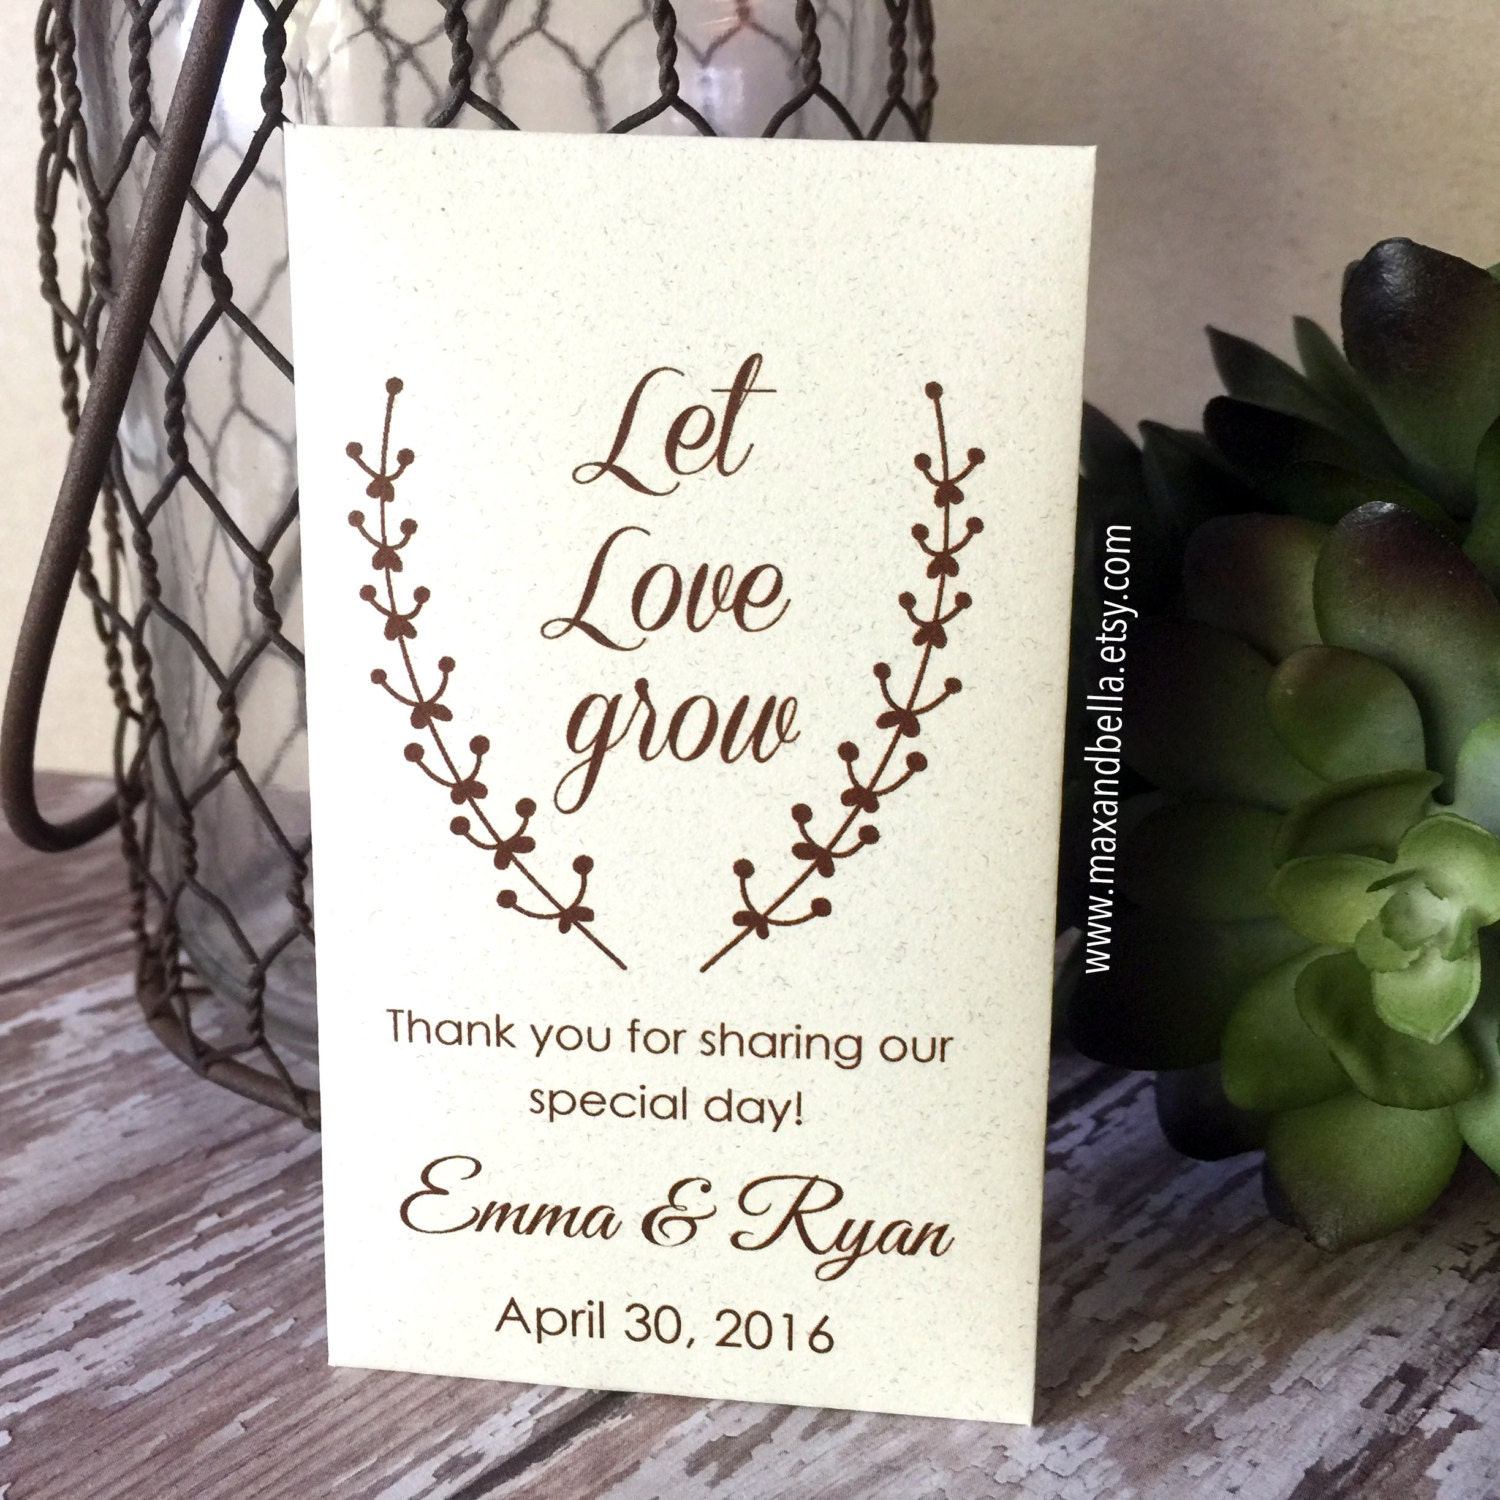 Sunflower Seed Packets For Wedding Favors Images - Wedding ...